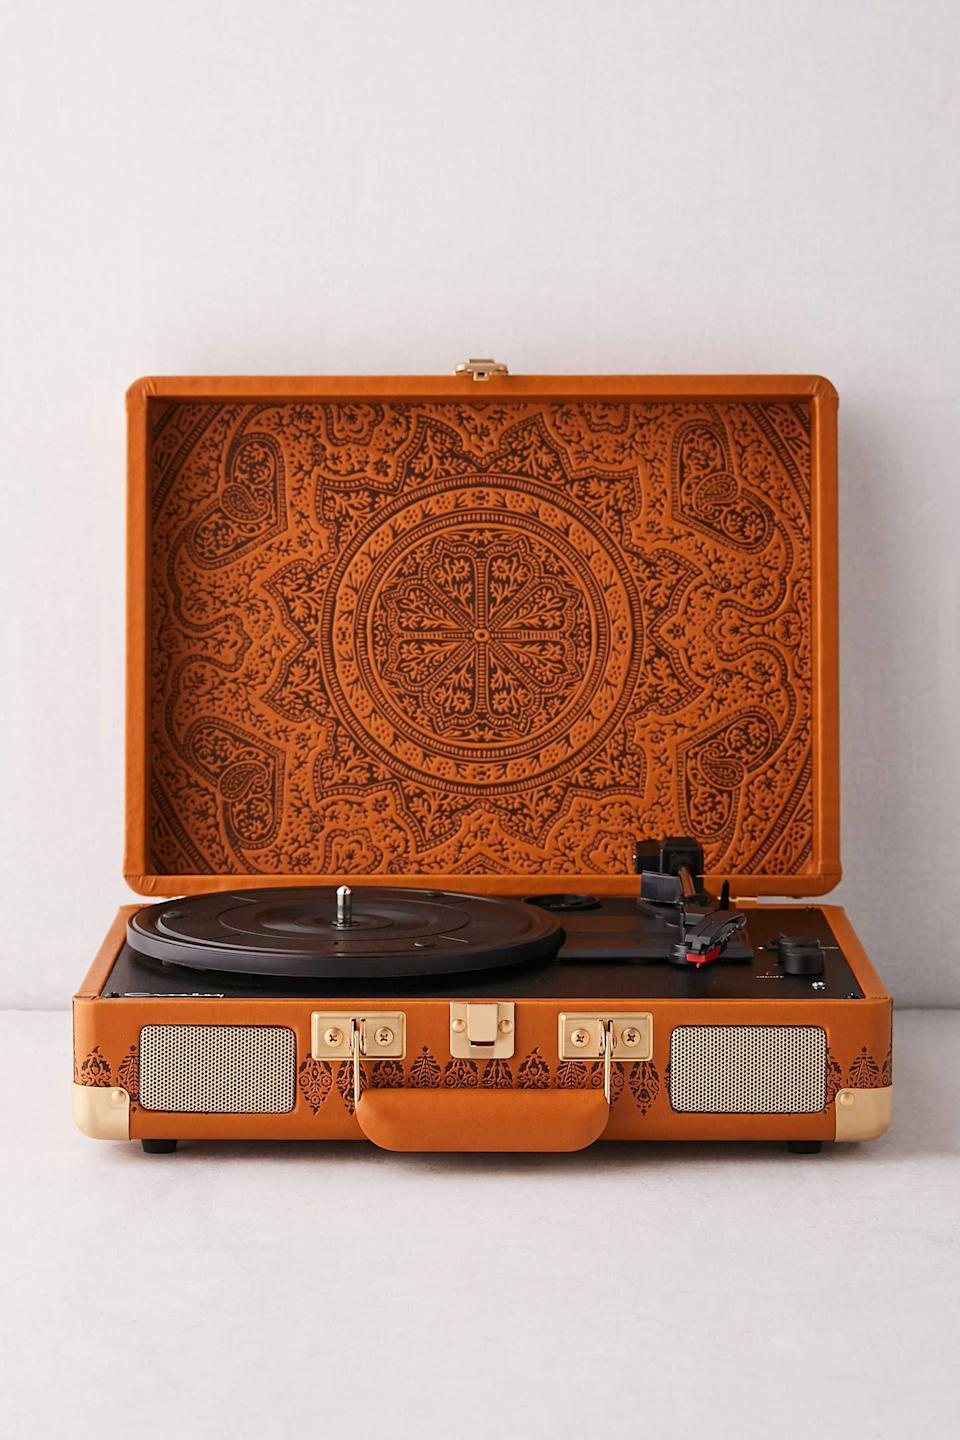 """<p><strong>Crosley</strong></p><p>urbanoutfitters.com</p><p><strong>$99.00</strong></p><p><a href=""""https://go.redirectingat.com?id=74968X1596630&url=https%3A%2F%2Fwww.urbanoutfitters.com%2Fshop%2Fcrosley-uo-exclusive-debossed-medallion-cruiser-bluetooth-record-player&sref=https%3A%2F%2Fwww.seventeen.com%2Flove%2Fdating-advice%2Fadvice%2Fg606%2Fboyfriend-gifts%2F"""" rel=""""nofollow noopener"""" target=""""_blank"""" data-ylk=""""slk:Shop Now"""" class=""""link rapid-noclick-resp"""">Shop Now</a></p><p>This portable turntable looks almost as good as it sounds. Yeah, peep that retro plaid print straight out of <em>Mad Men</em>. </p>"""